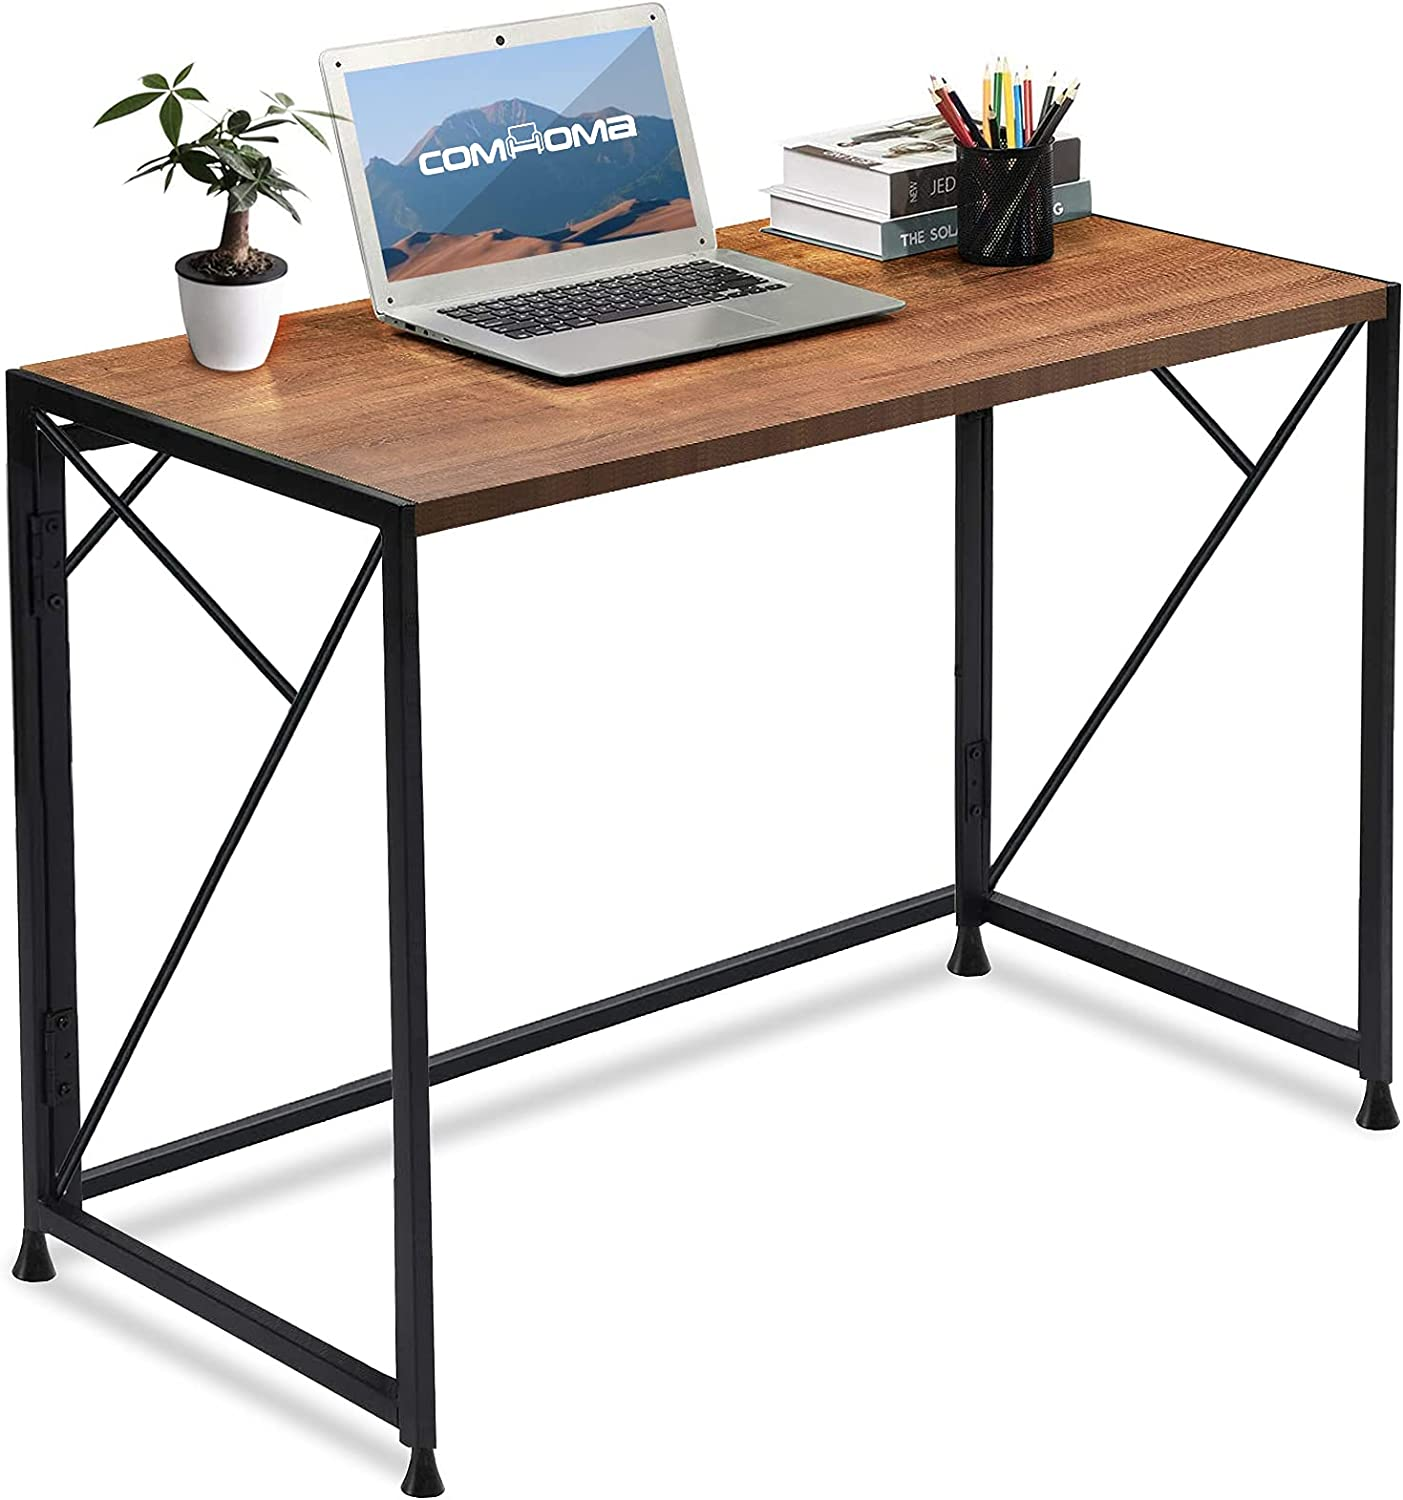 COMHOMA Folding Popular Courier shipping free shipping standard Desk Foldable Office Home 40